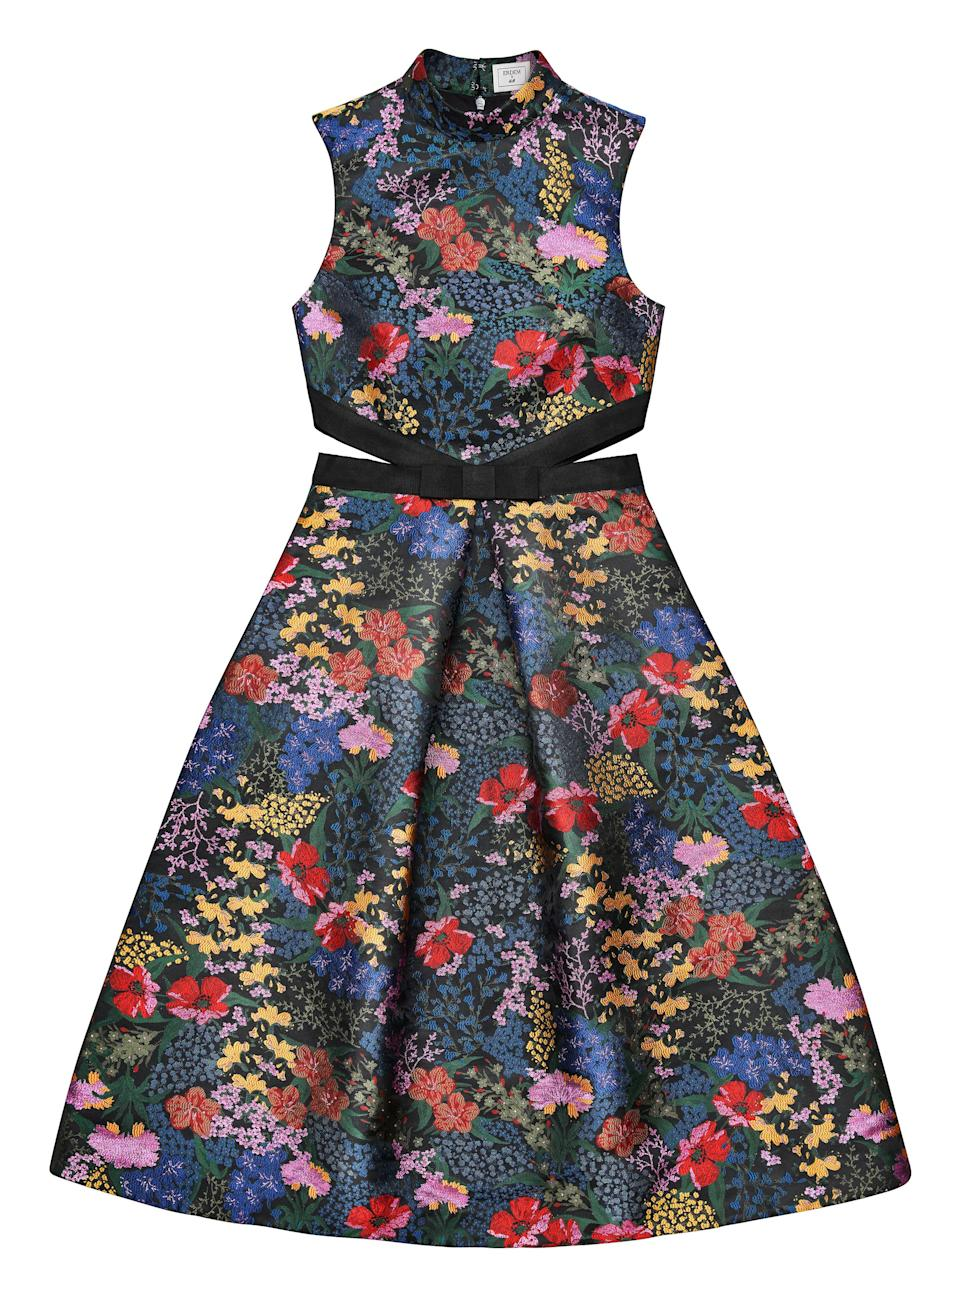 """<p>When you think of Erdem, what first springs to mind? Florals, of course. And the first item on our wish list is this cut-out sleeveless dress. We'll be teaming ours with box-fresh trainers and heels come evening. <em><a rel=""""nofollow noopener"""" href=""""http://www2.hm.com/en_gb/index.html"""" target=""""_blank"""" data-ylk=""""slk:H&M"""" class=""""link rapid-noclick-resp"""">H&M</a>, £119.99</em> </p>"""